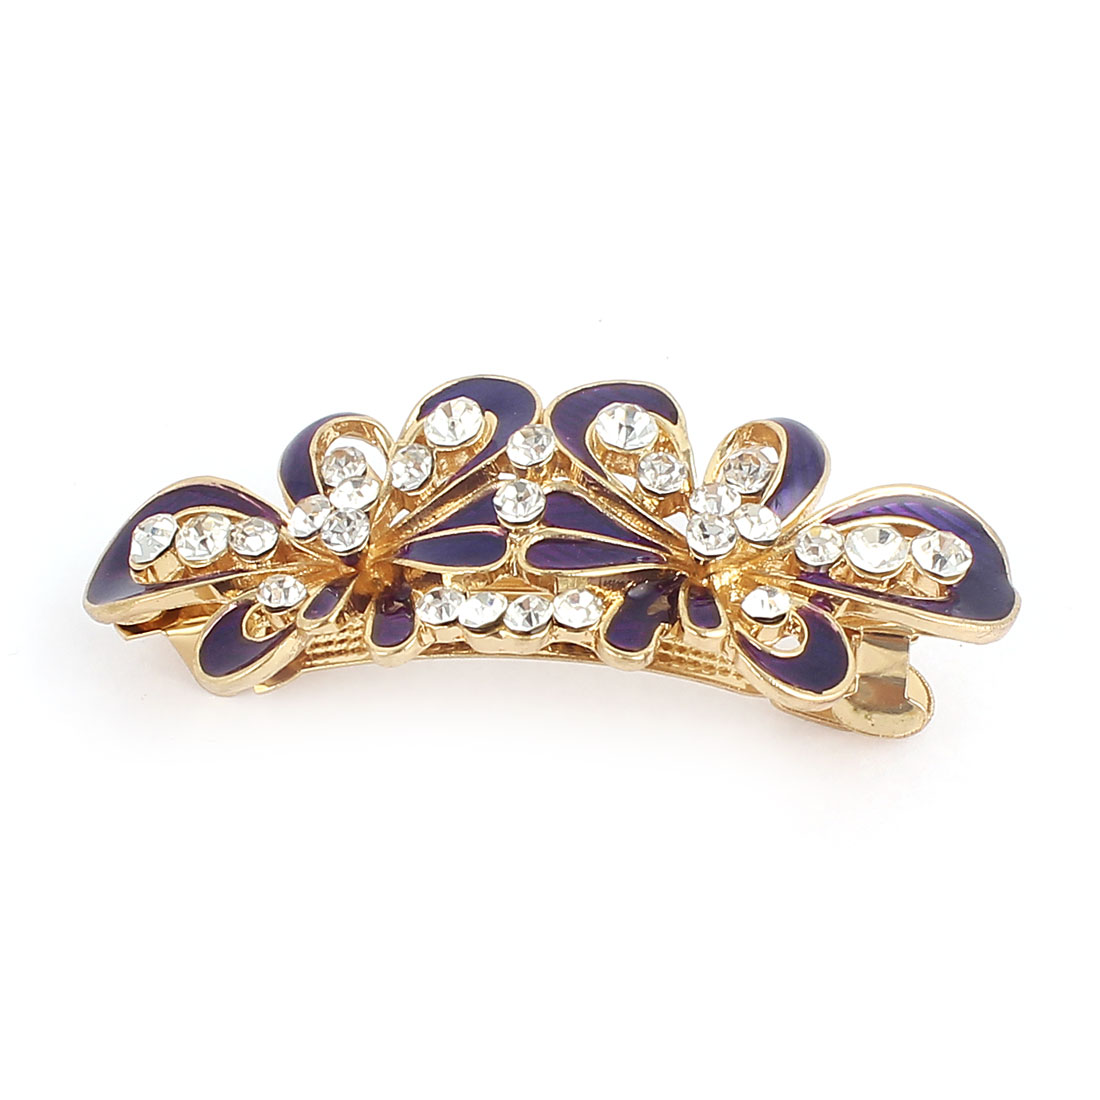 Lady Rhinestone Decor Metal Flower Design Barrette Hair Clip Gold Tone Purple